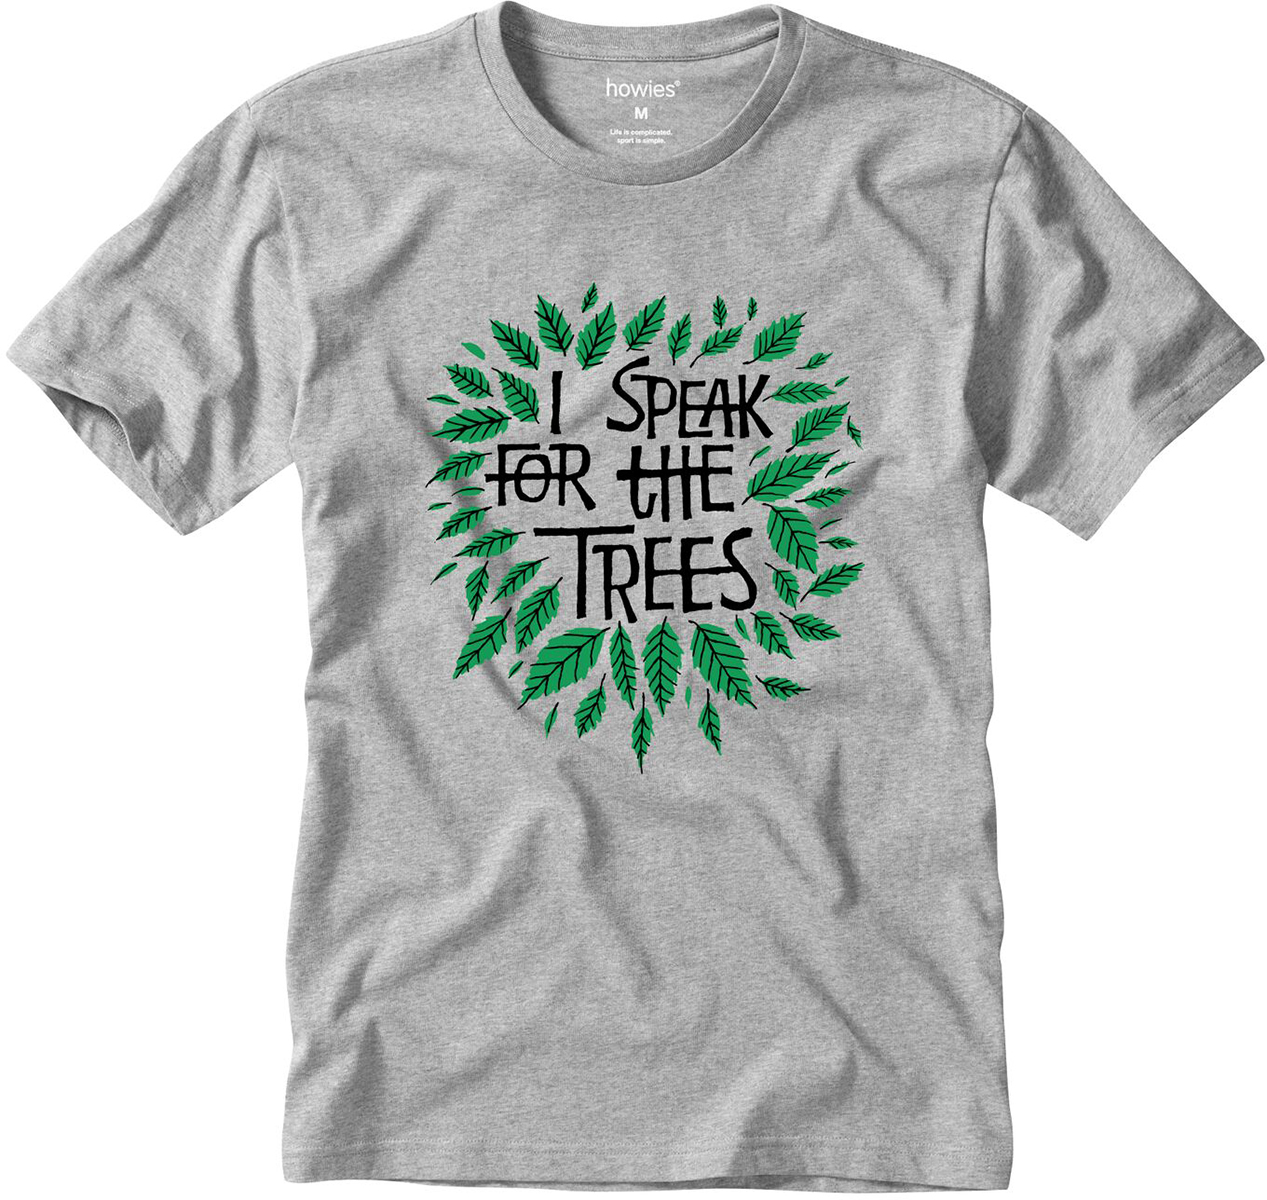 howies I Speak For The Trees T Shirt | Jerseys